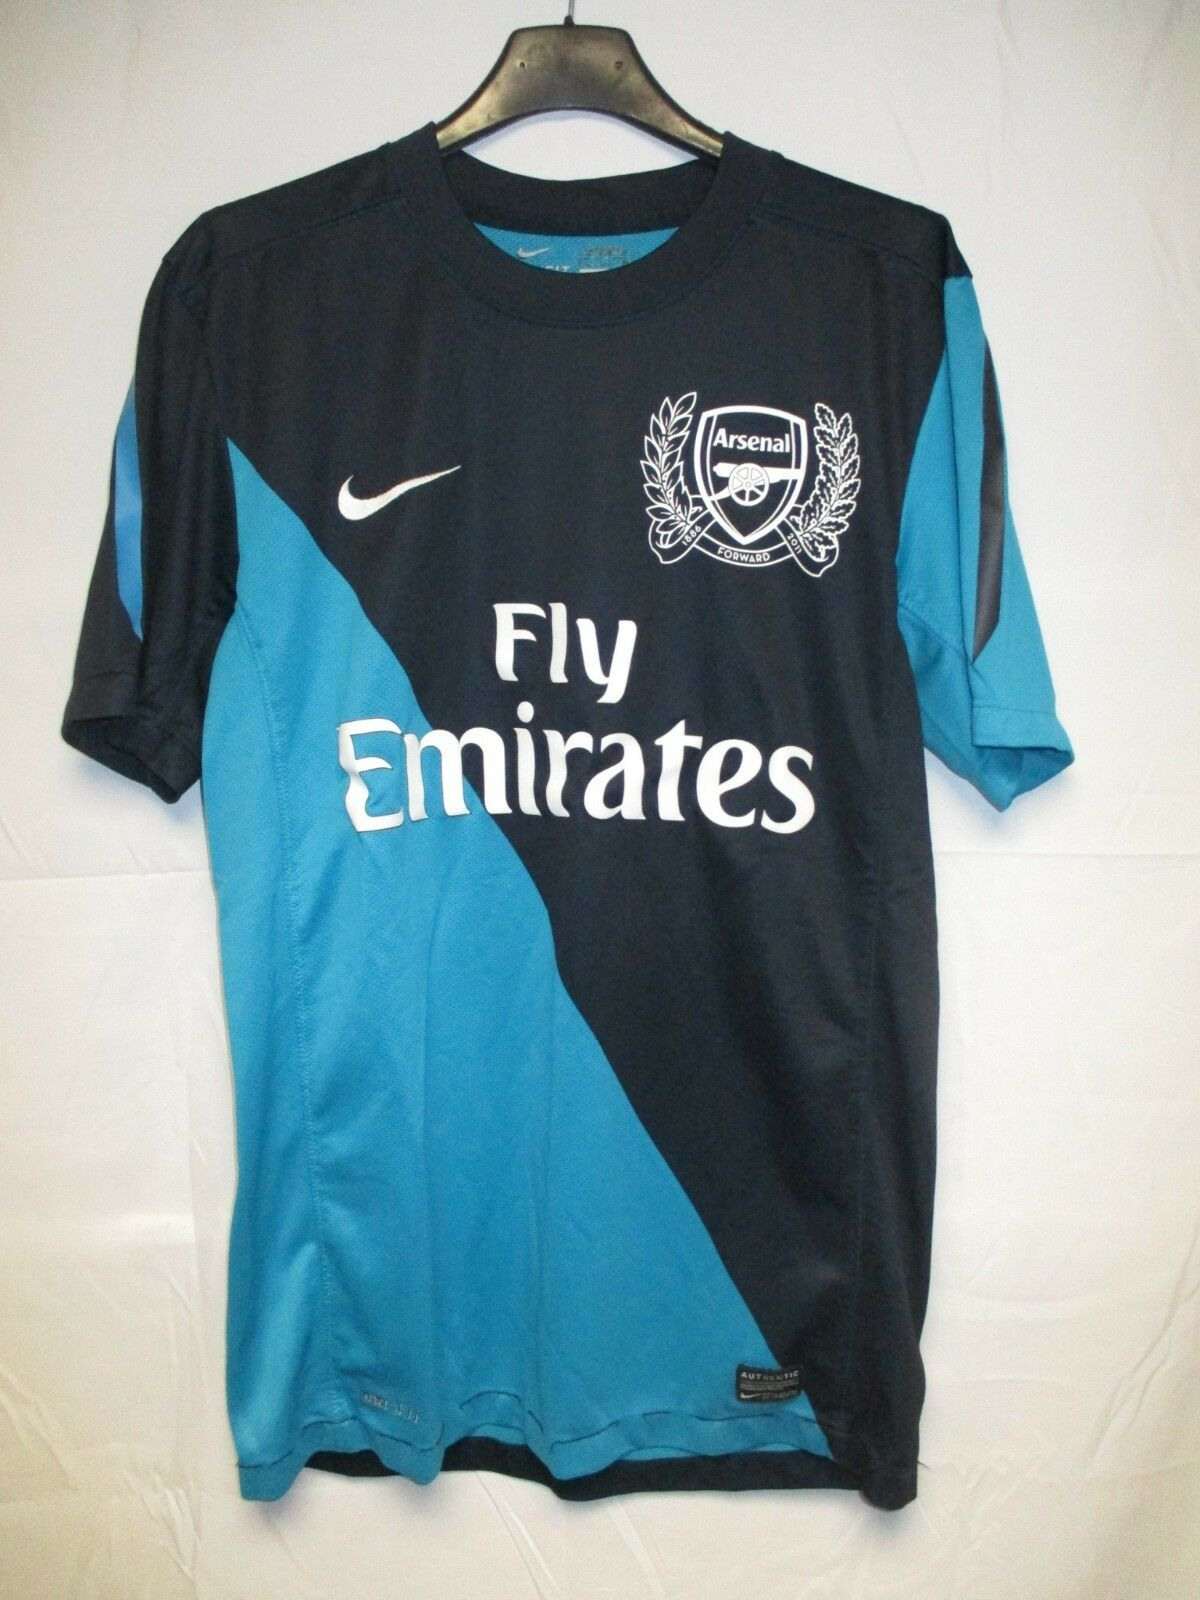 Maillot ARSENAL 2012 NIKE away shirt jersey trikot football The GUNNERS S